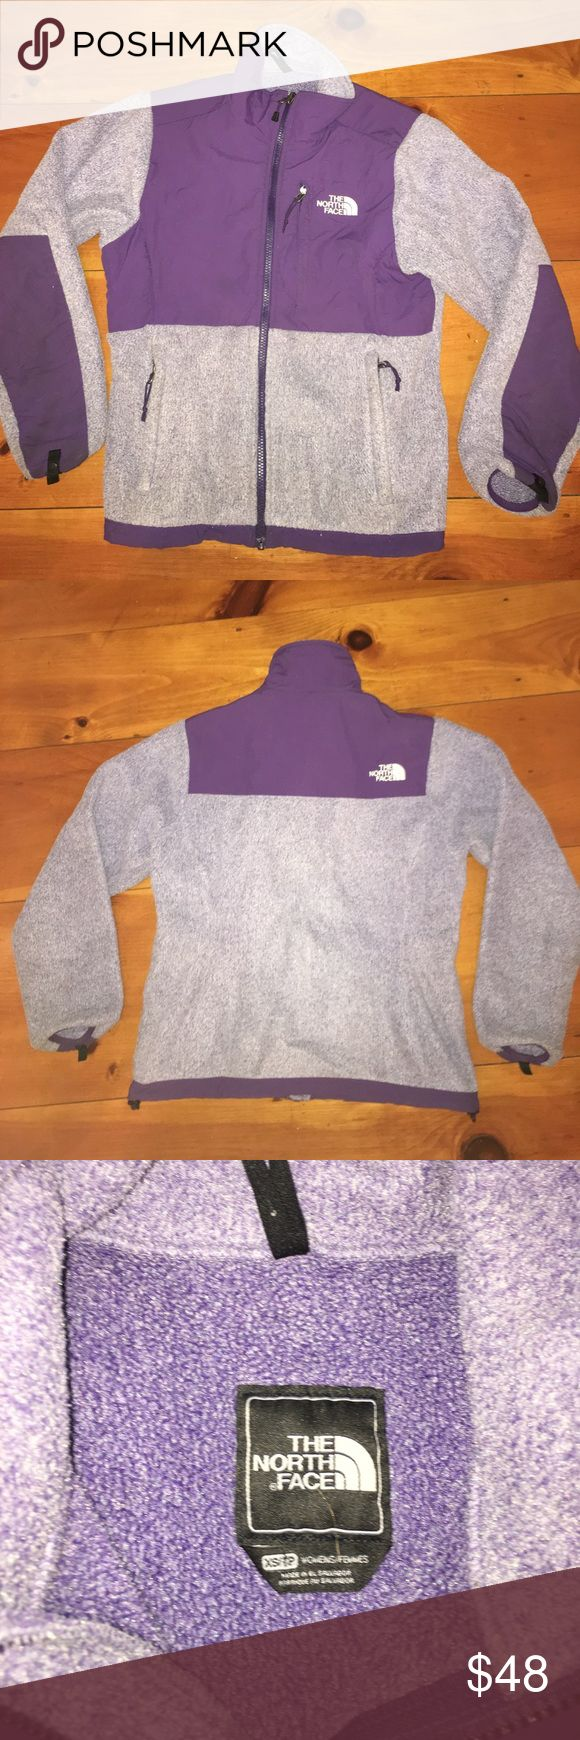 WOMANS NORTH FACE JACKET SIZE XS Woman's North Face Jacket size extra small. Has a full zipper and three pockets. Good condition. North Face Jackets & Coats